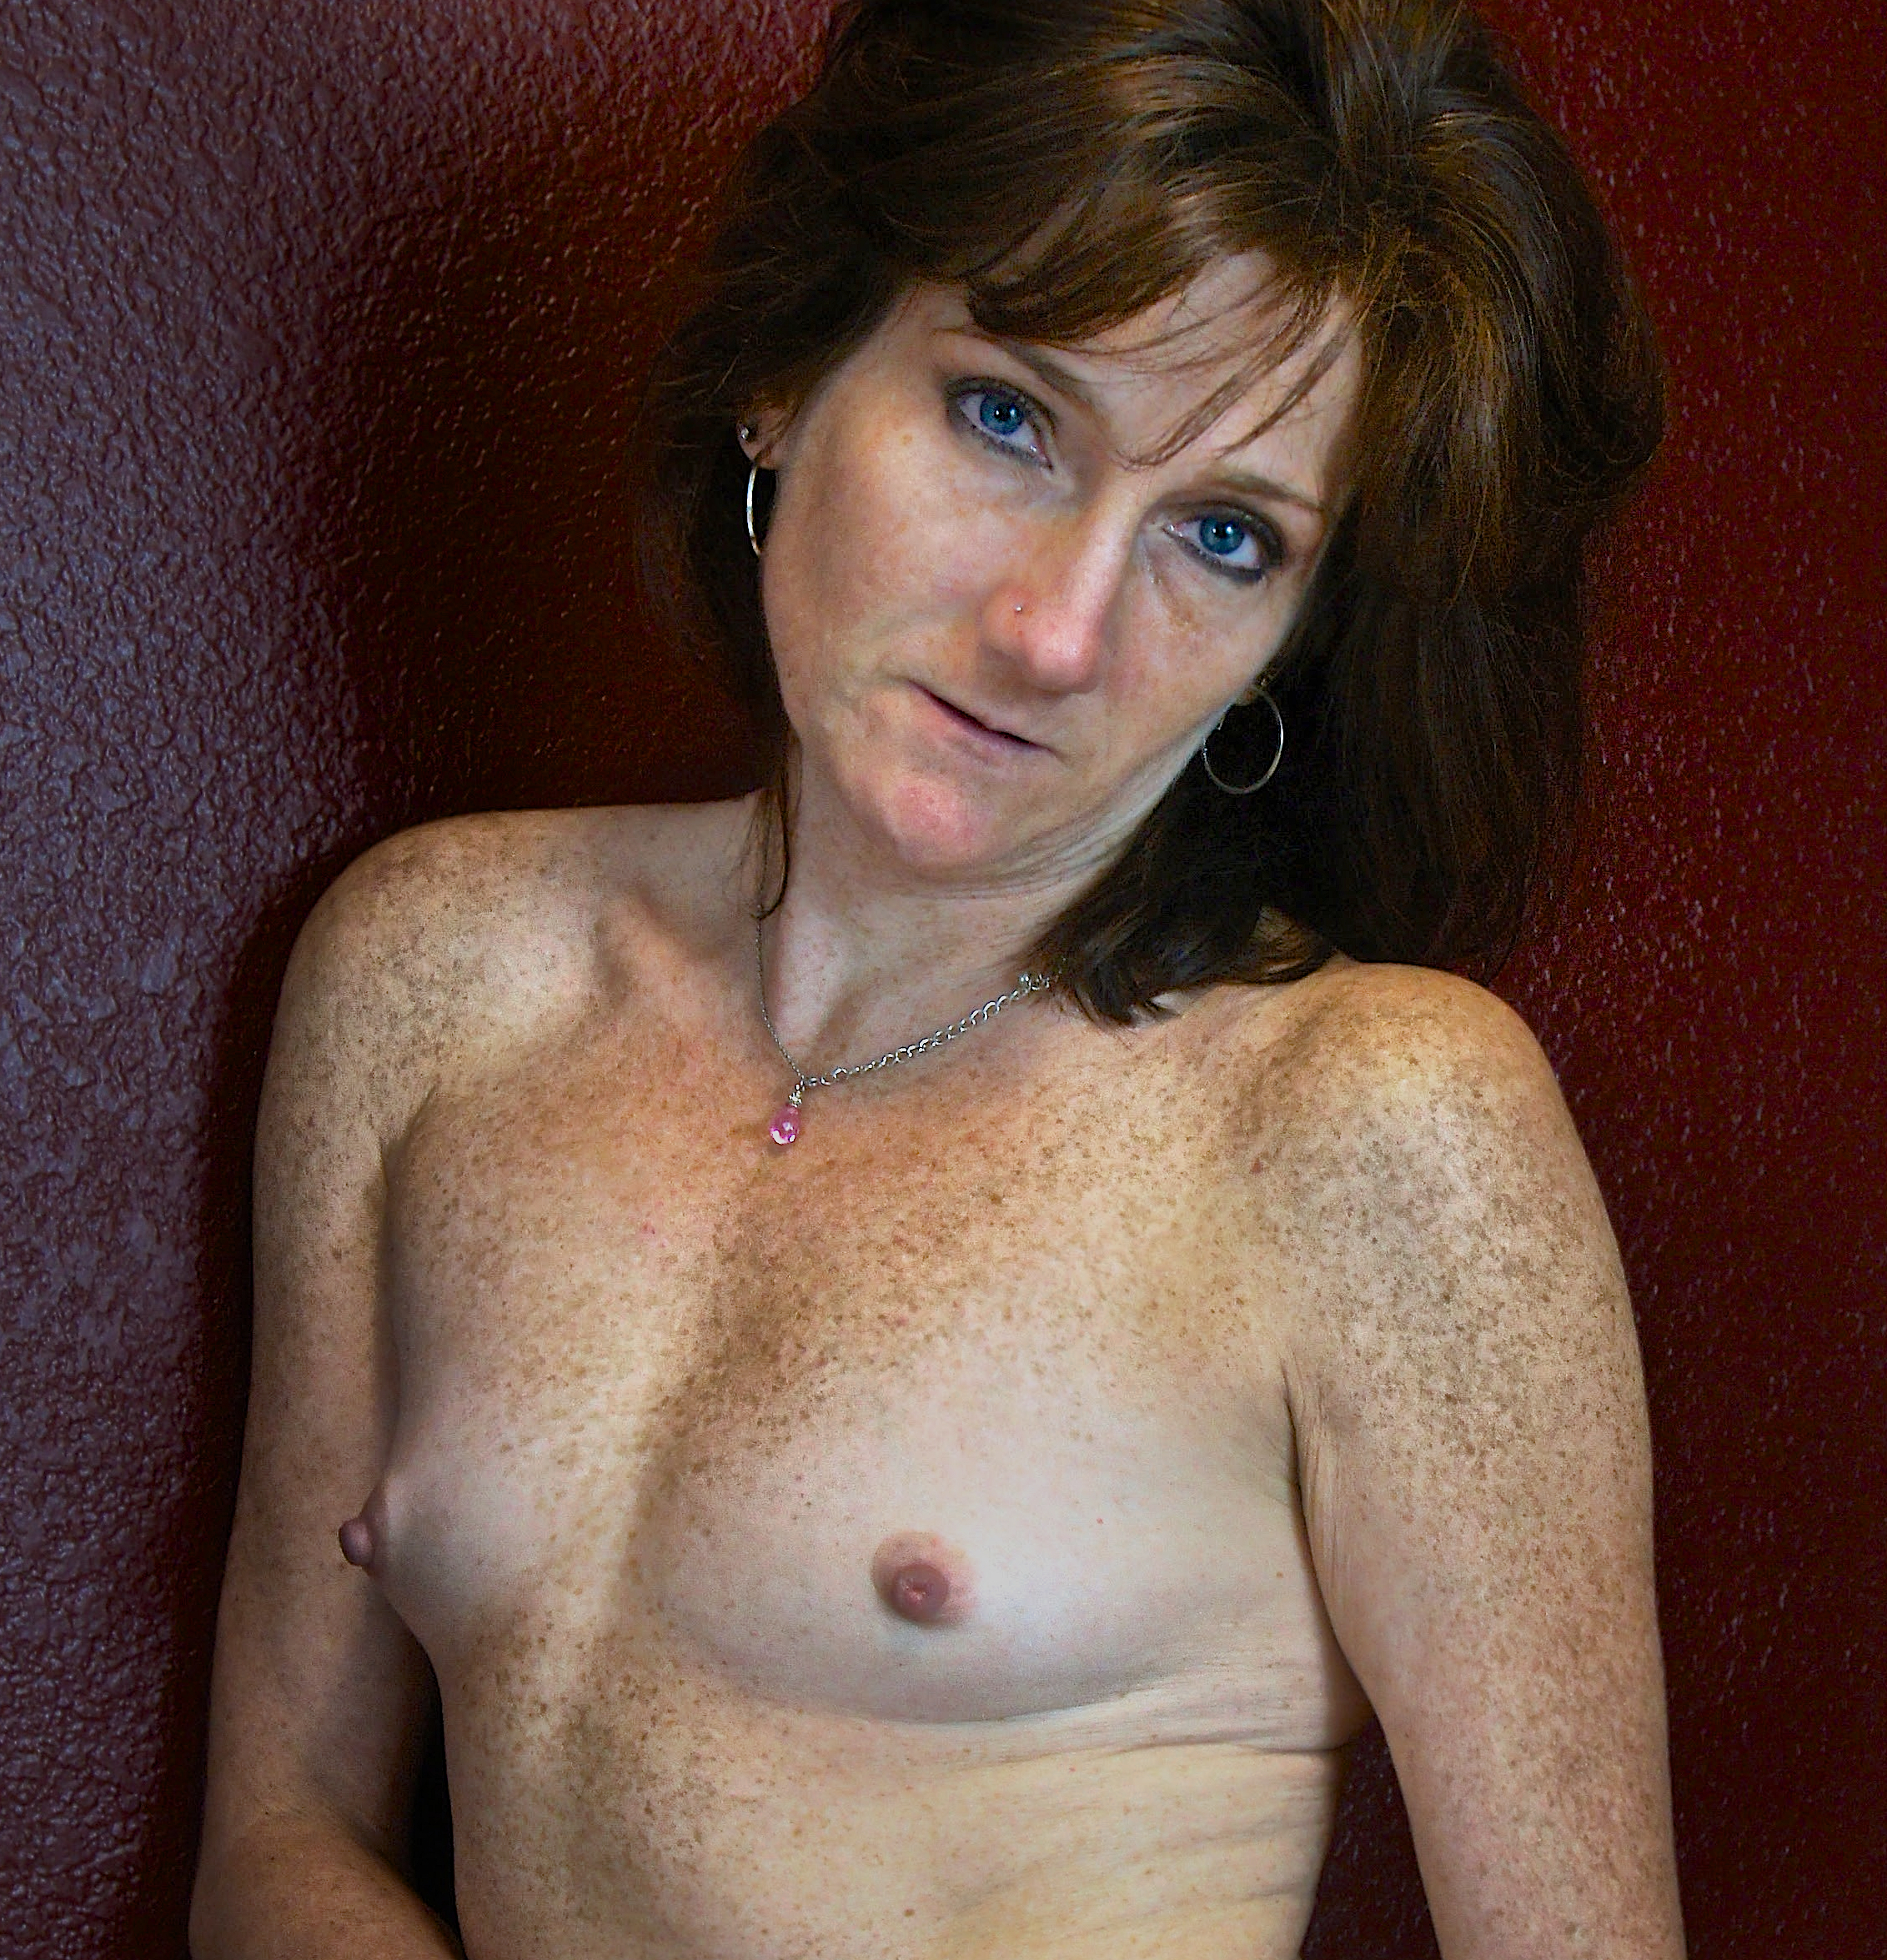 Woman with freckles and blue-eyes